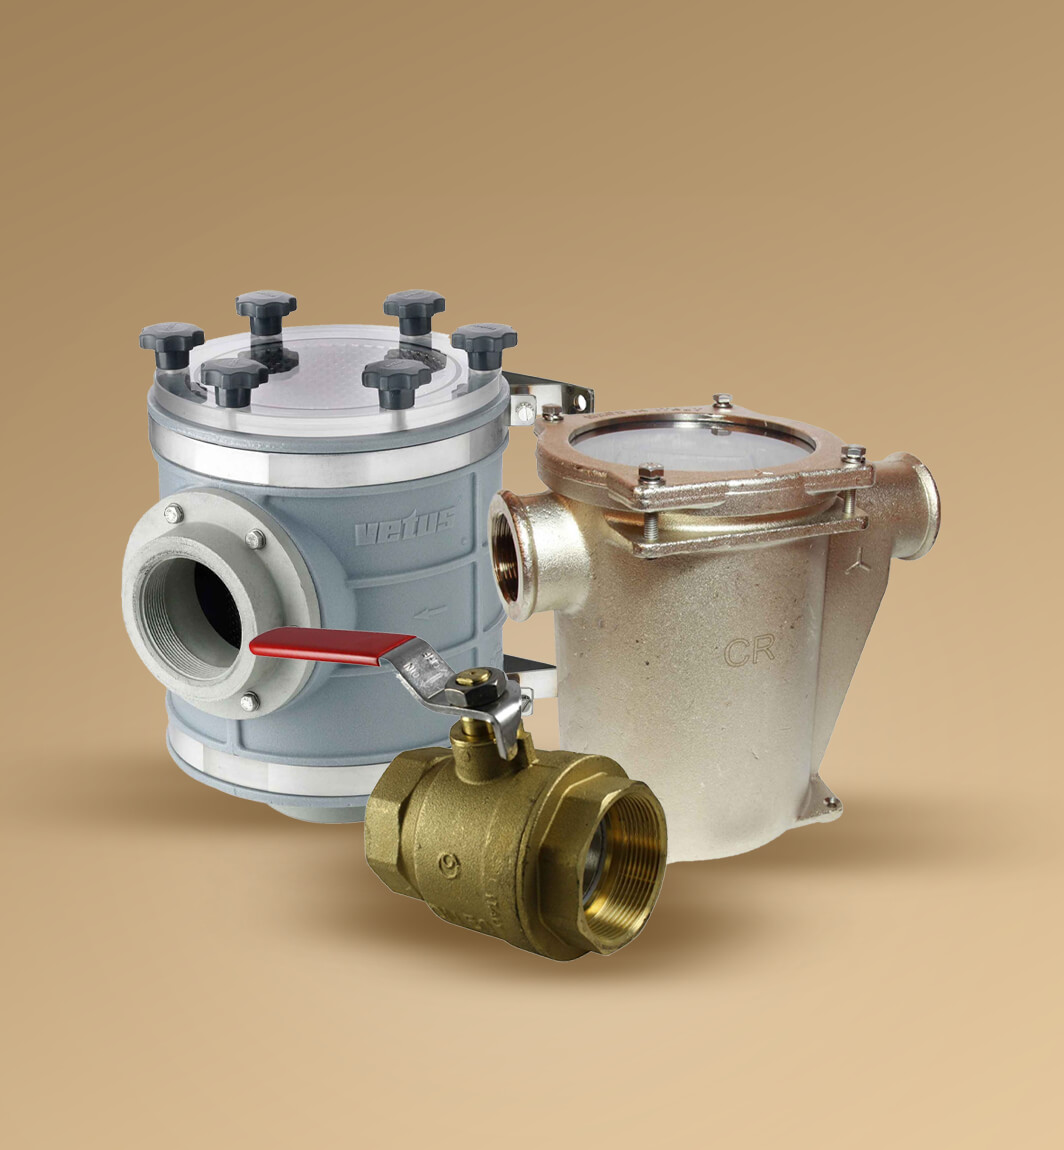 Shop Strainers, Fittings & Valves